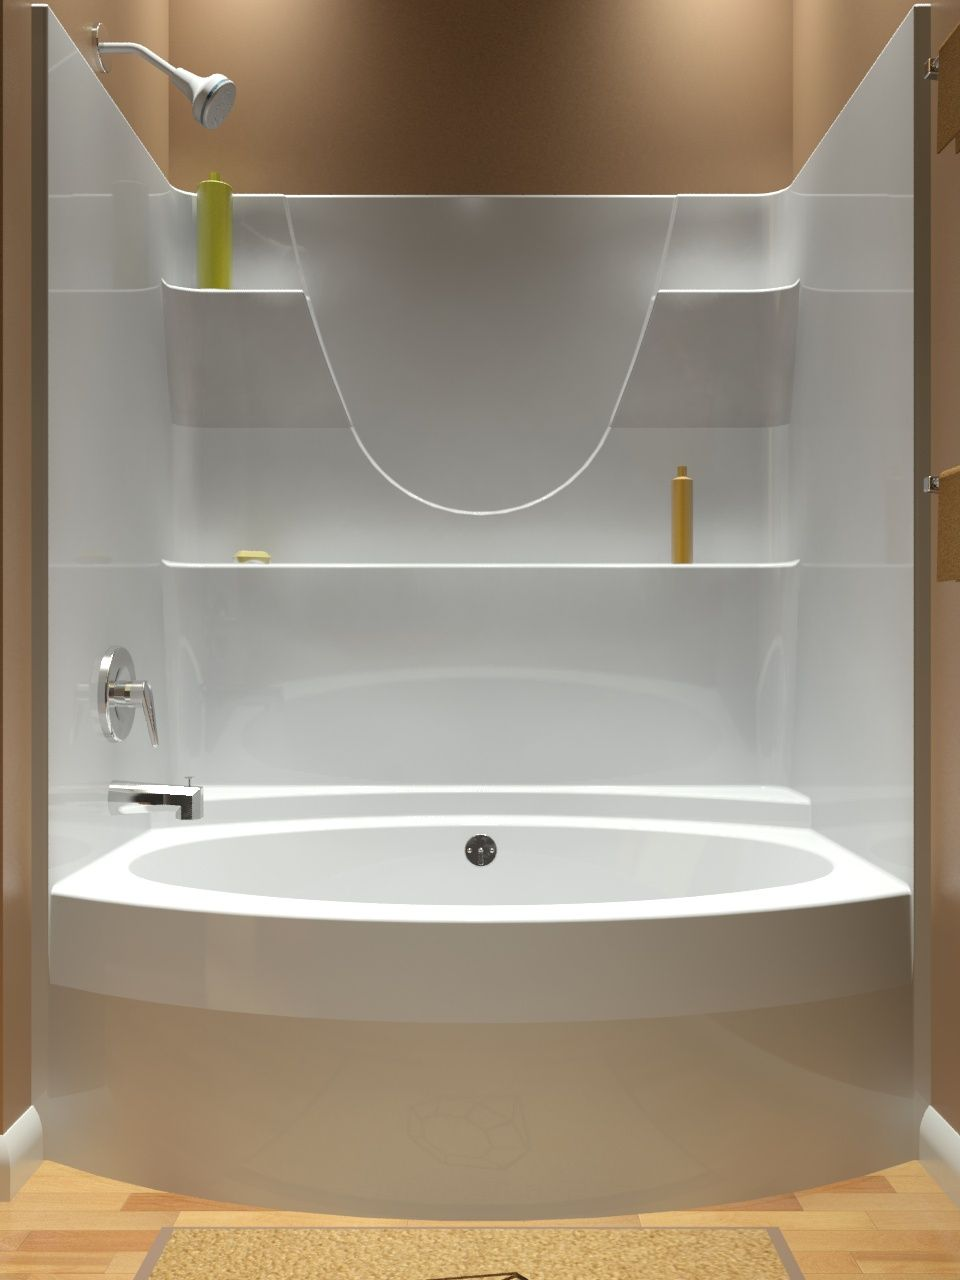 Tub and Shower  One Piece T 603580 Diamond Showers SHOWER TUB UNITS Pinterest